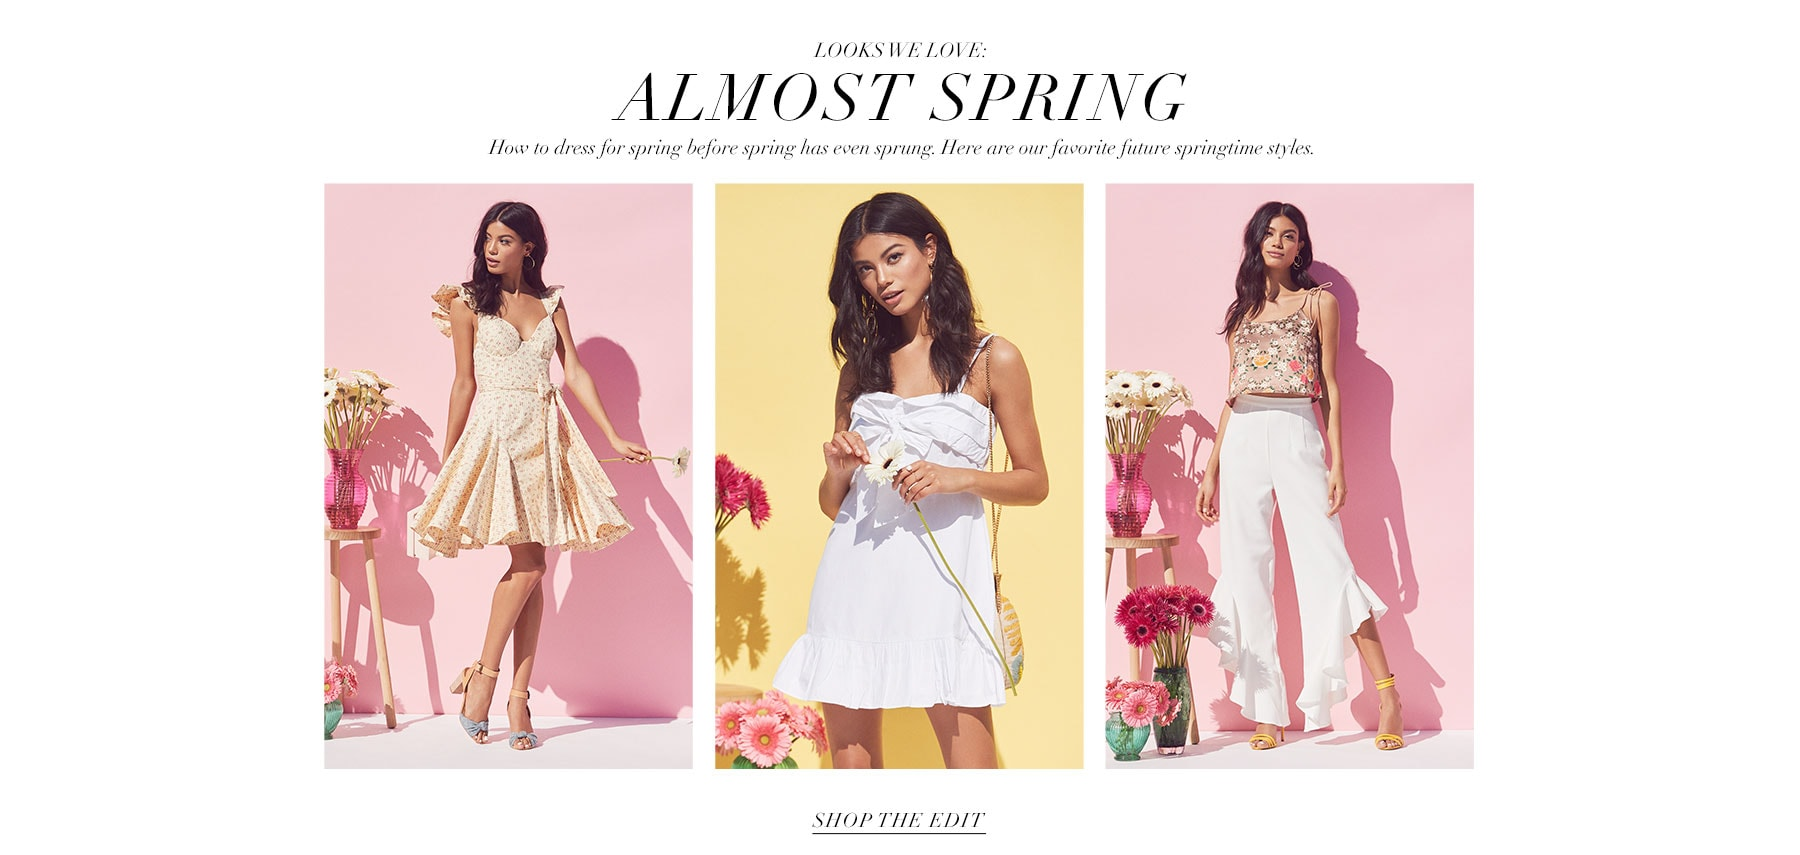 Looks We Love: Almost Spring. How to dress for spring before spring has even sprung. Here are our favorite future springtime styles. Shop the edit.